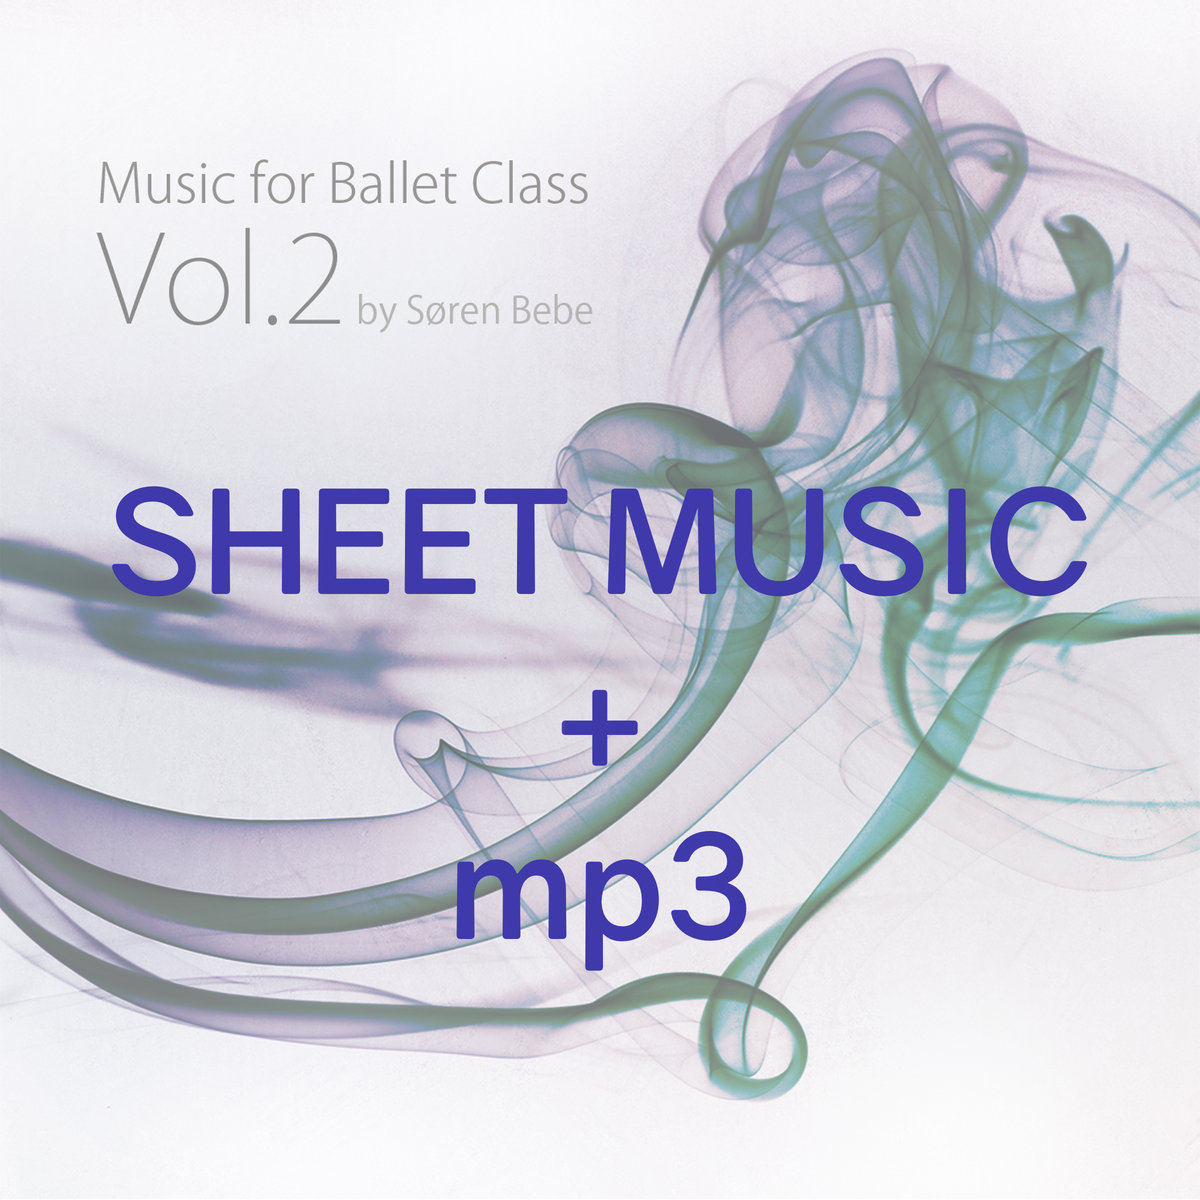 Sheet Music Mp3 Jeté 1 Track 6 From Music For Ballet Class Vol 2 Søren Bebe